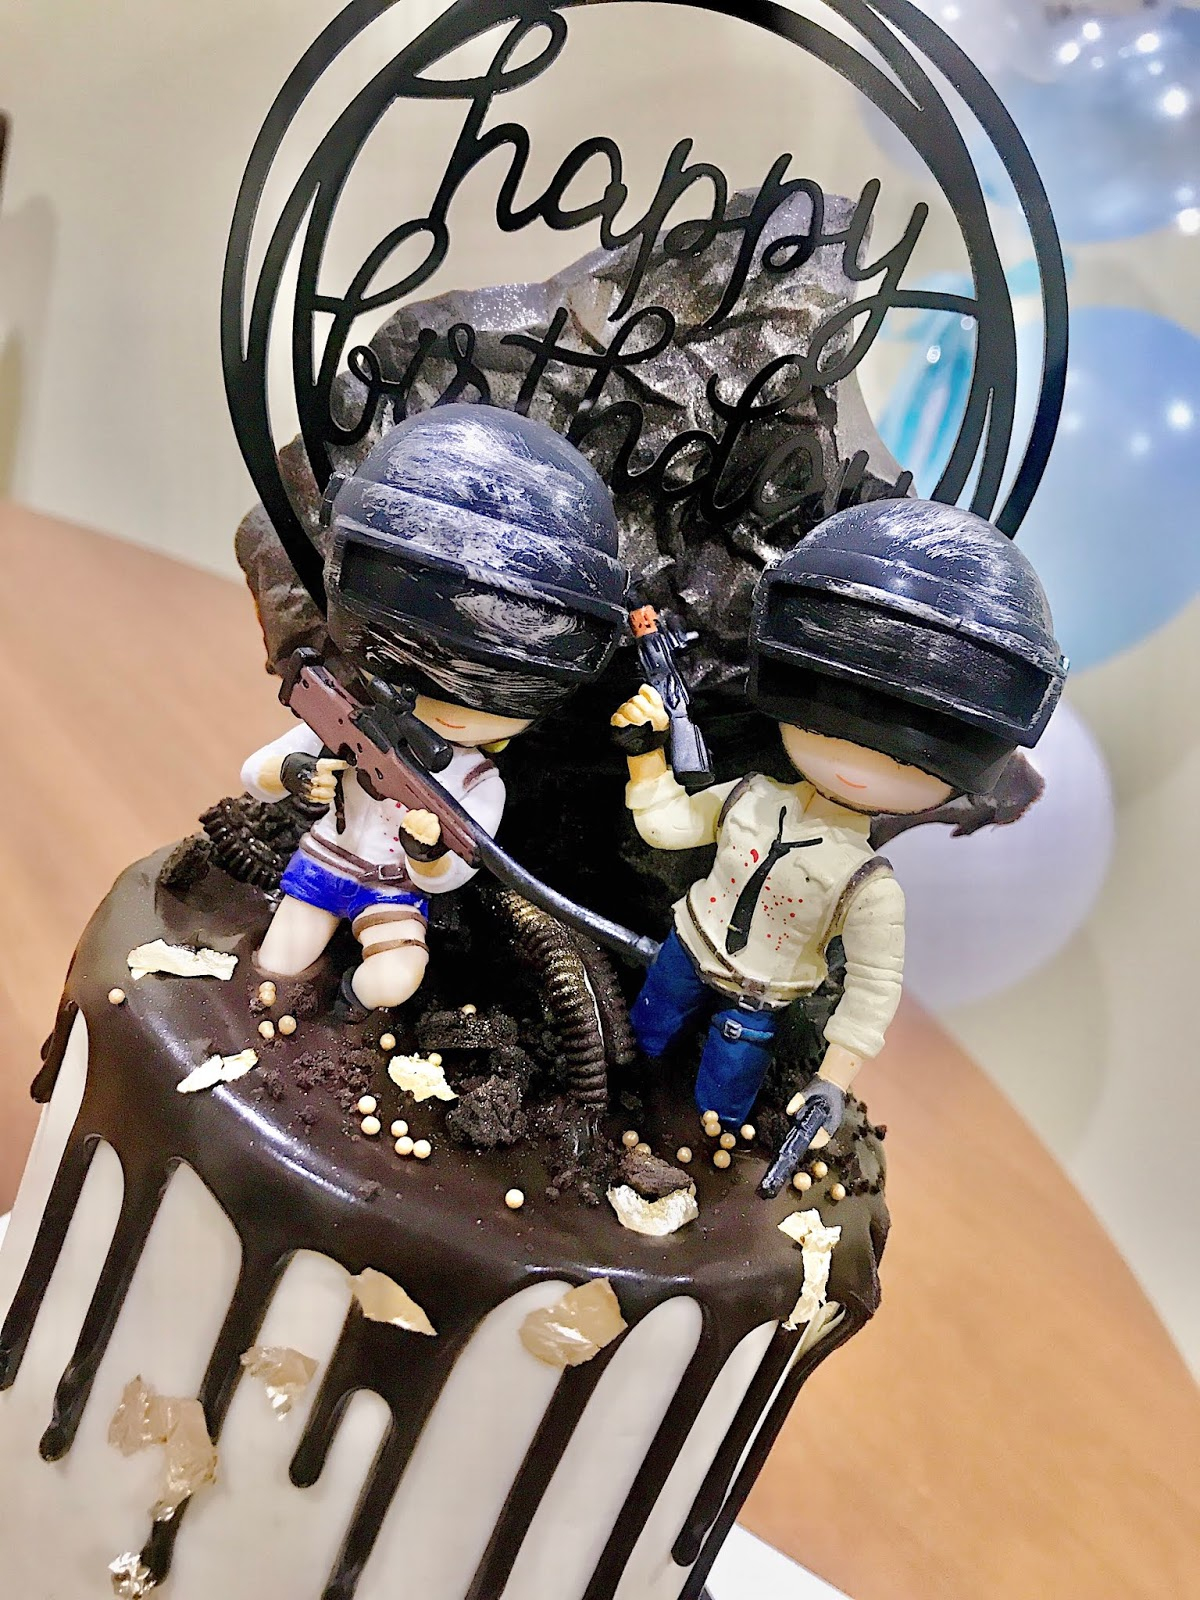 Joilynn Chee Loong S Birthday X Pubg Cake From Bakes Inks